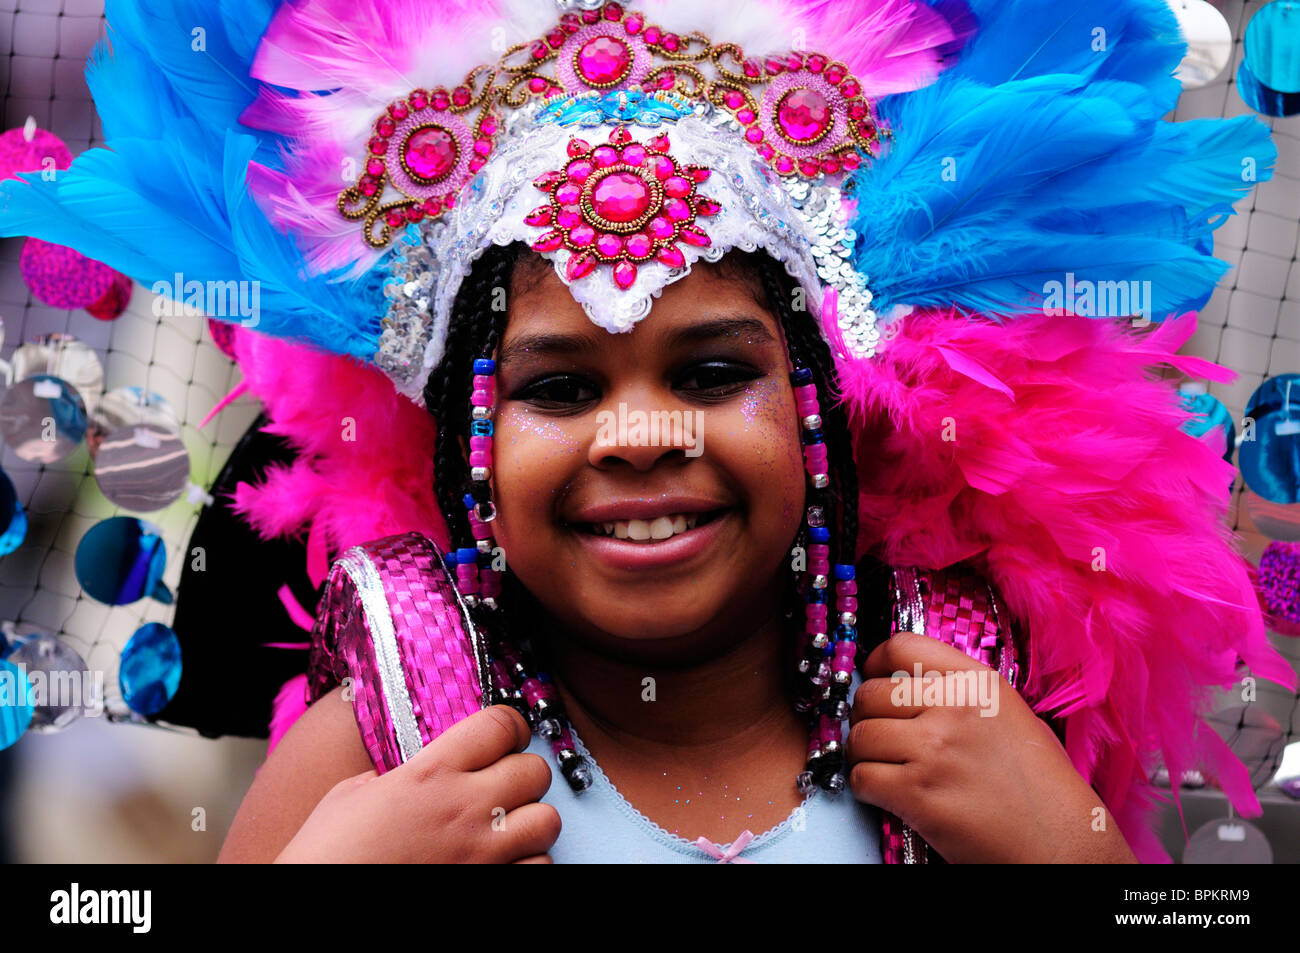 Portrait of a Girl at the Notting Hill Carnival Children's Day Parade, London, England, UK - Stock Image